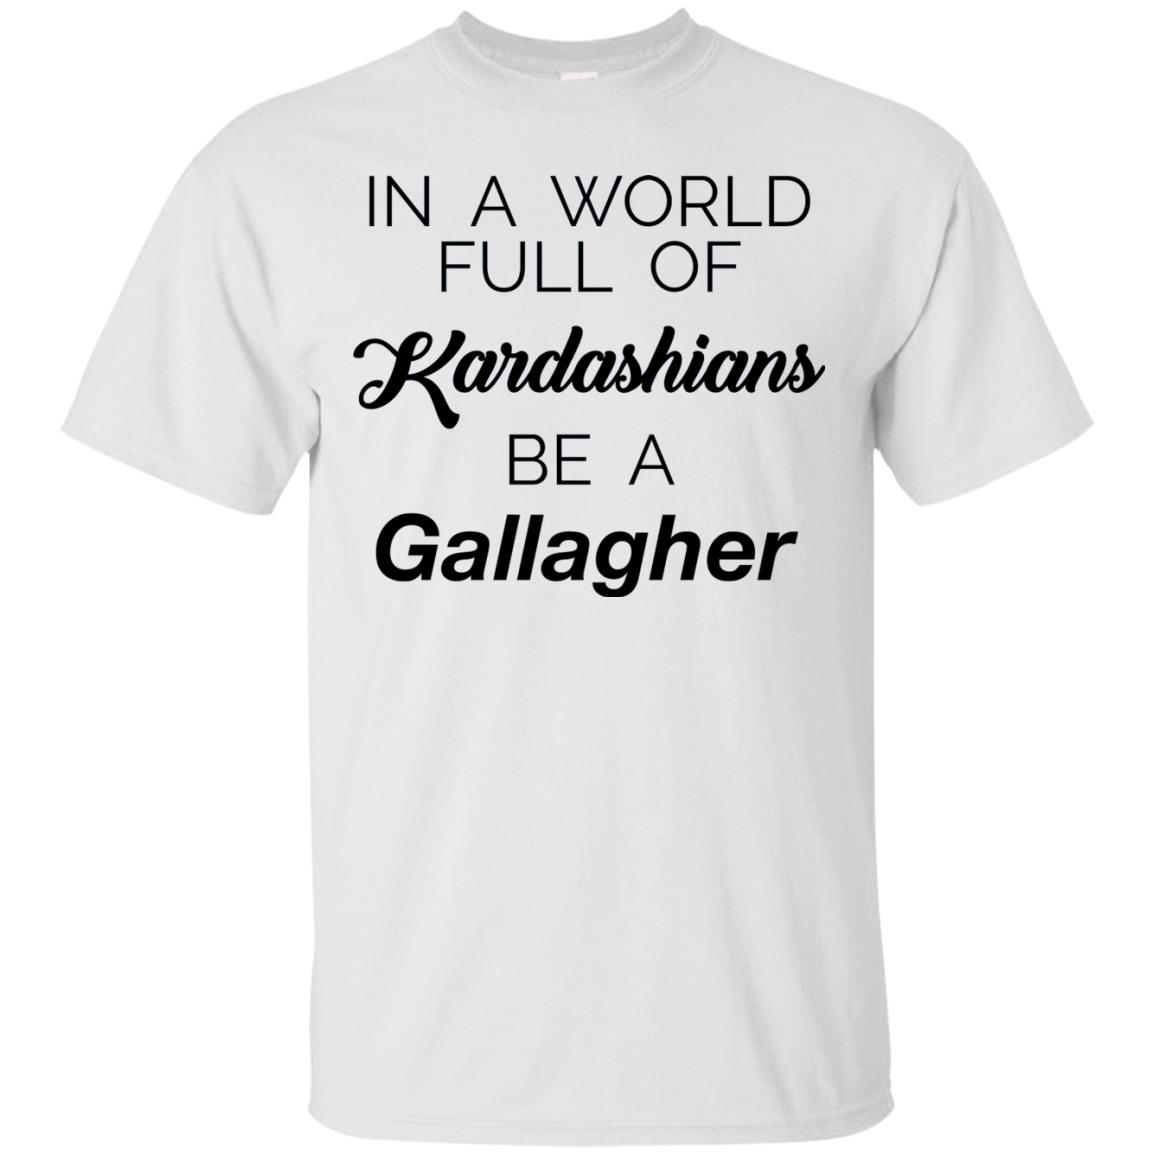 image 1464 - In a world full of Kardashians Be a Gallagher shirt